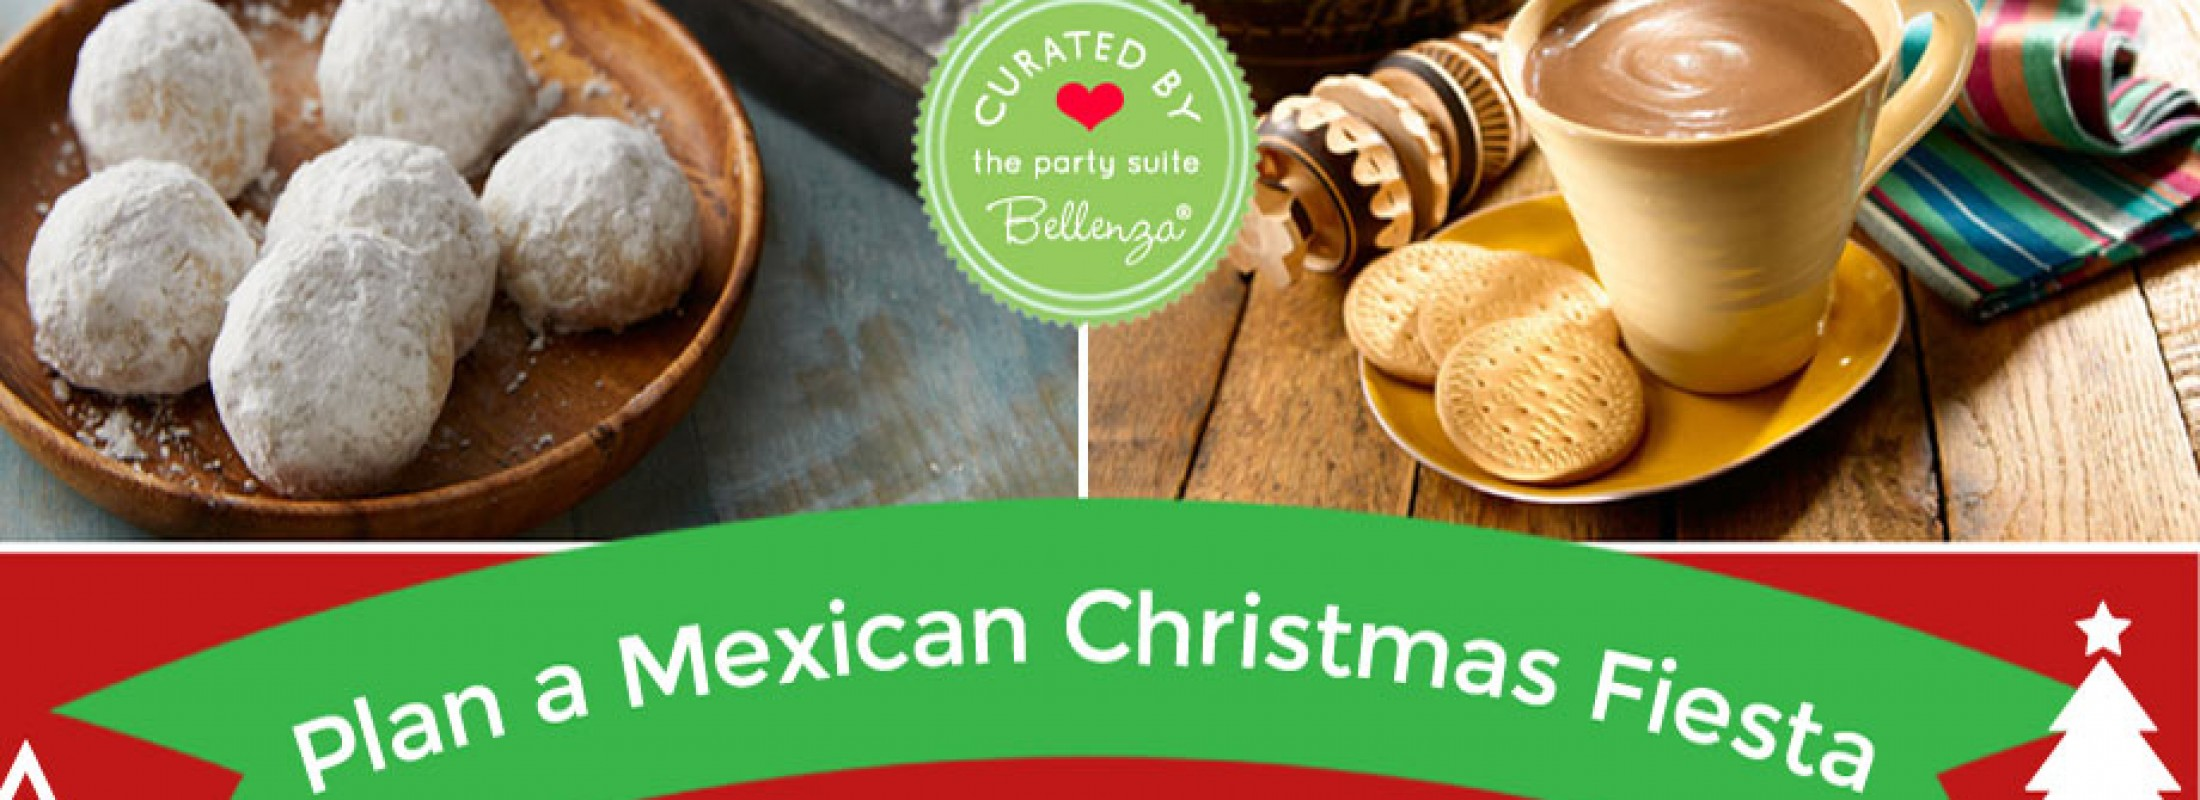 Easy Mexican Fiesta for Holiday Entertaining